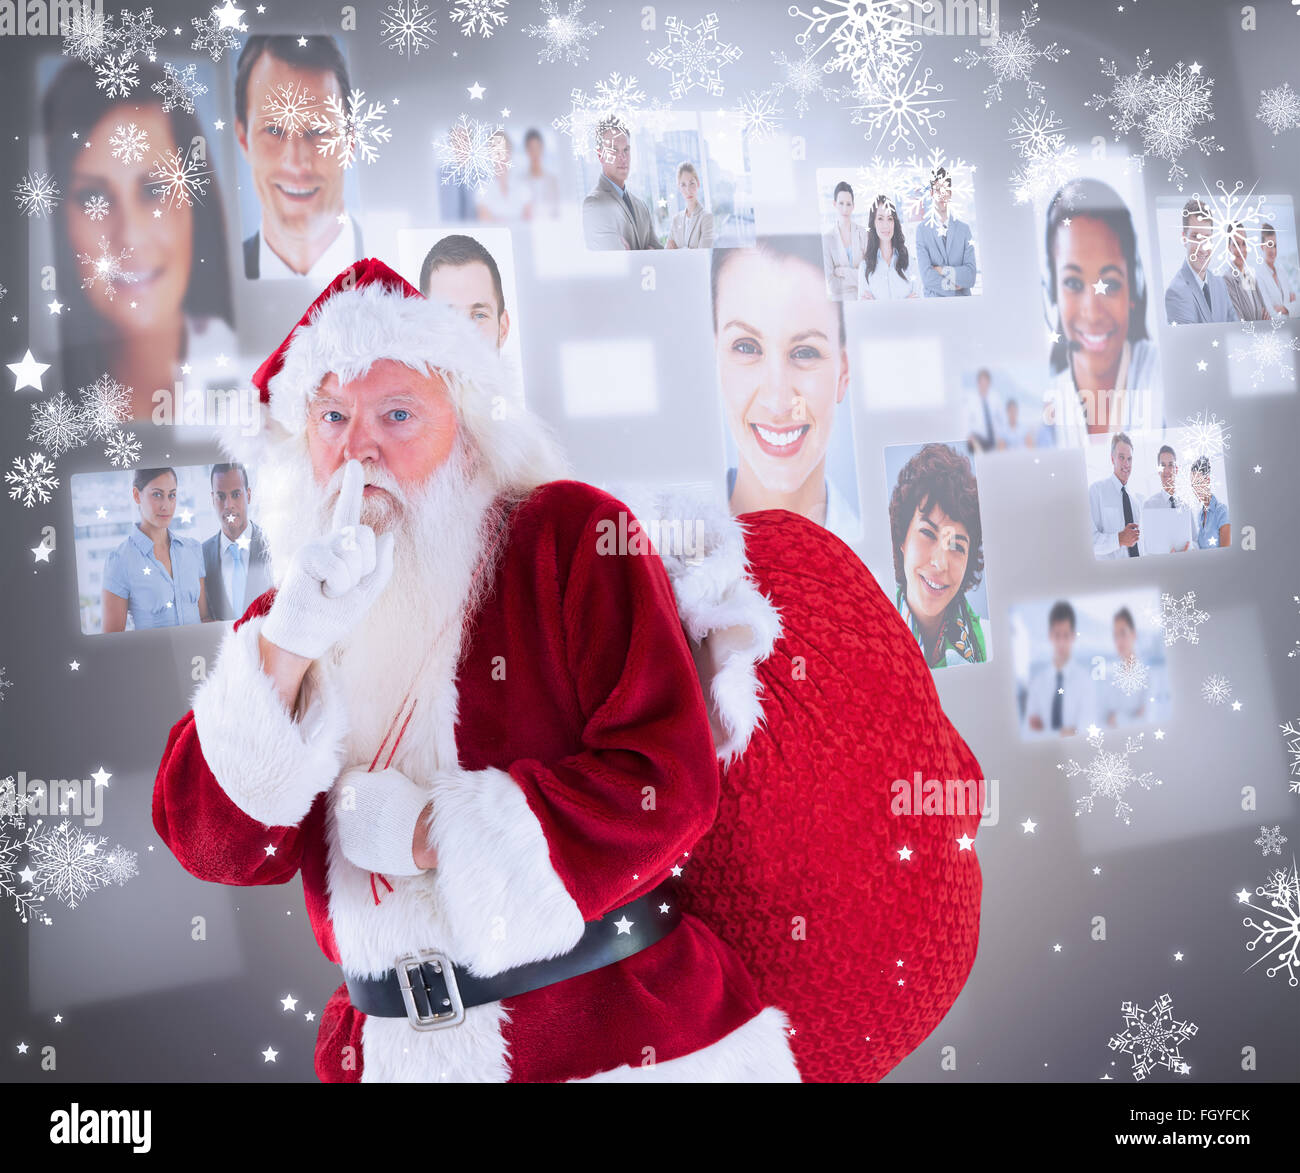 Composite image of santa asking for quiet with bag - Stock Image